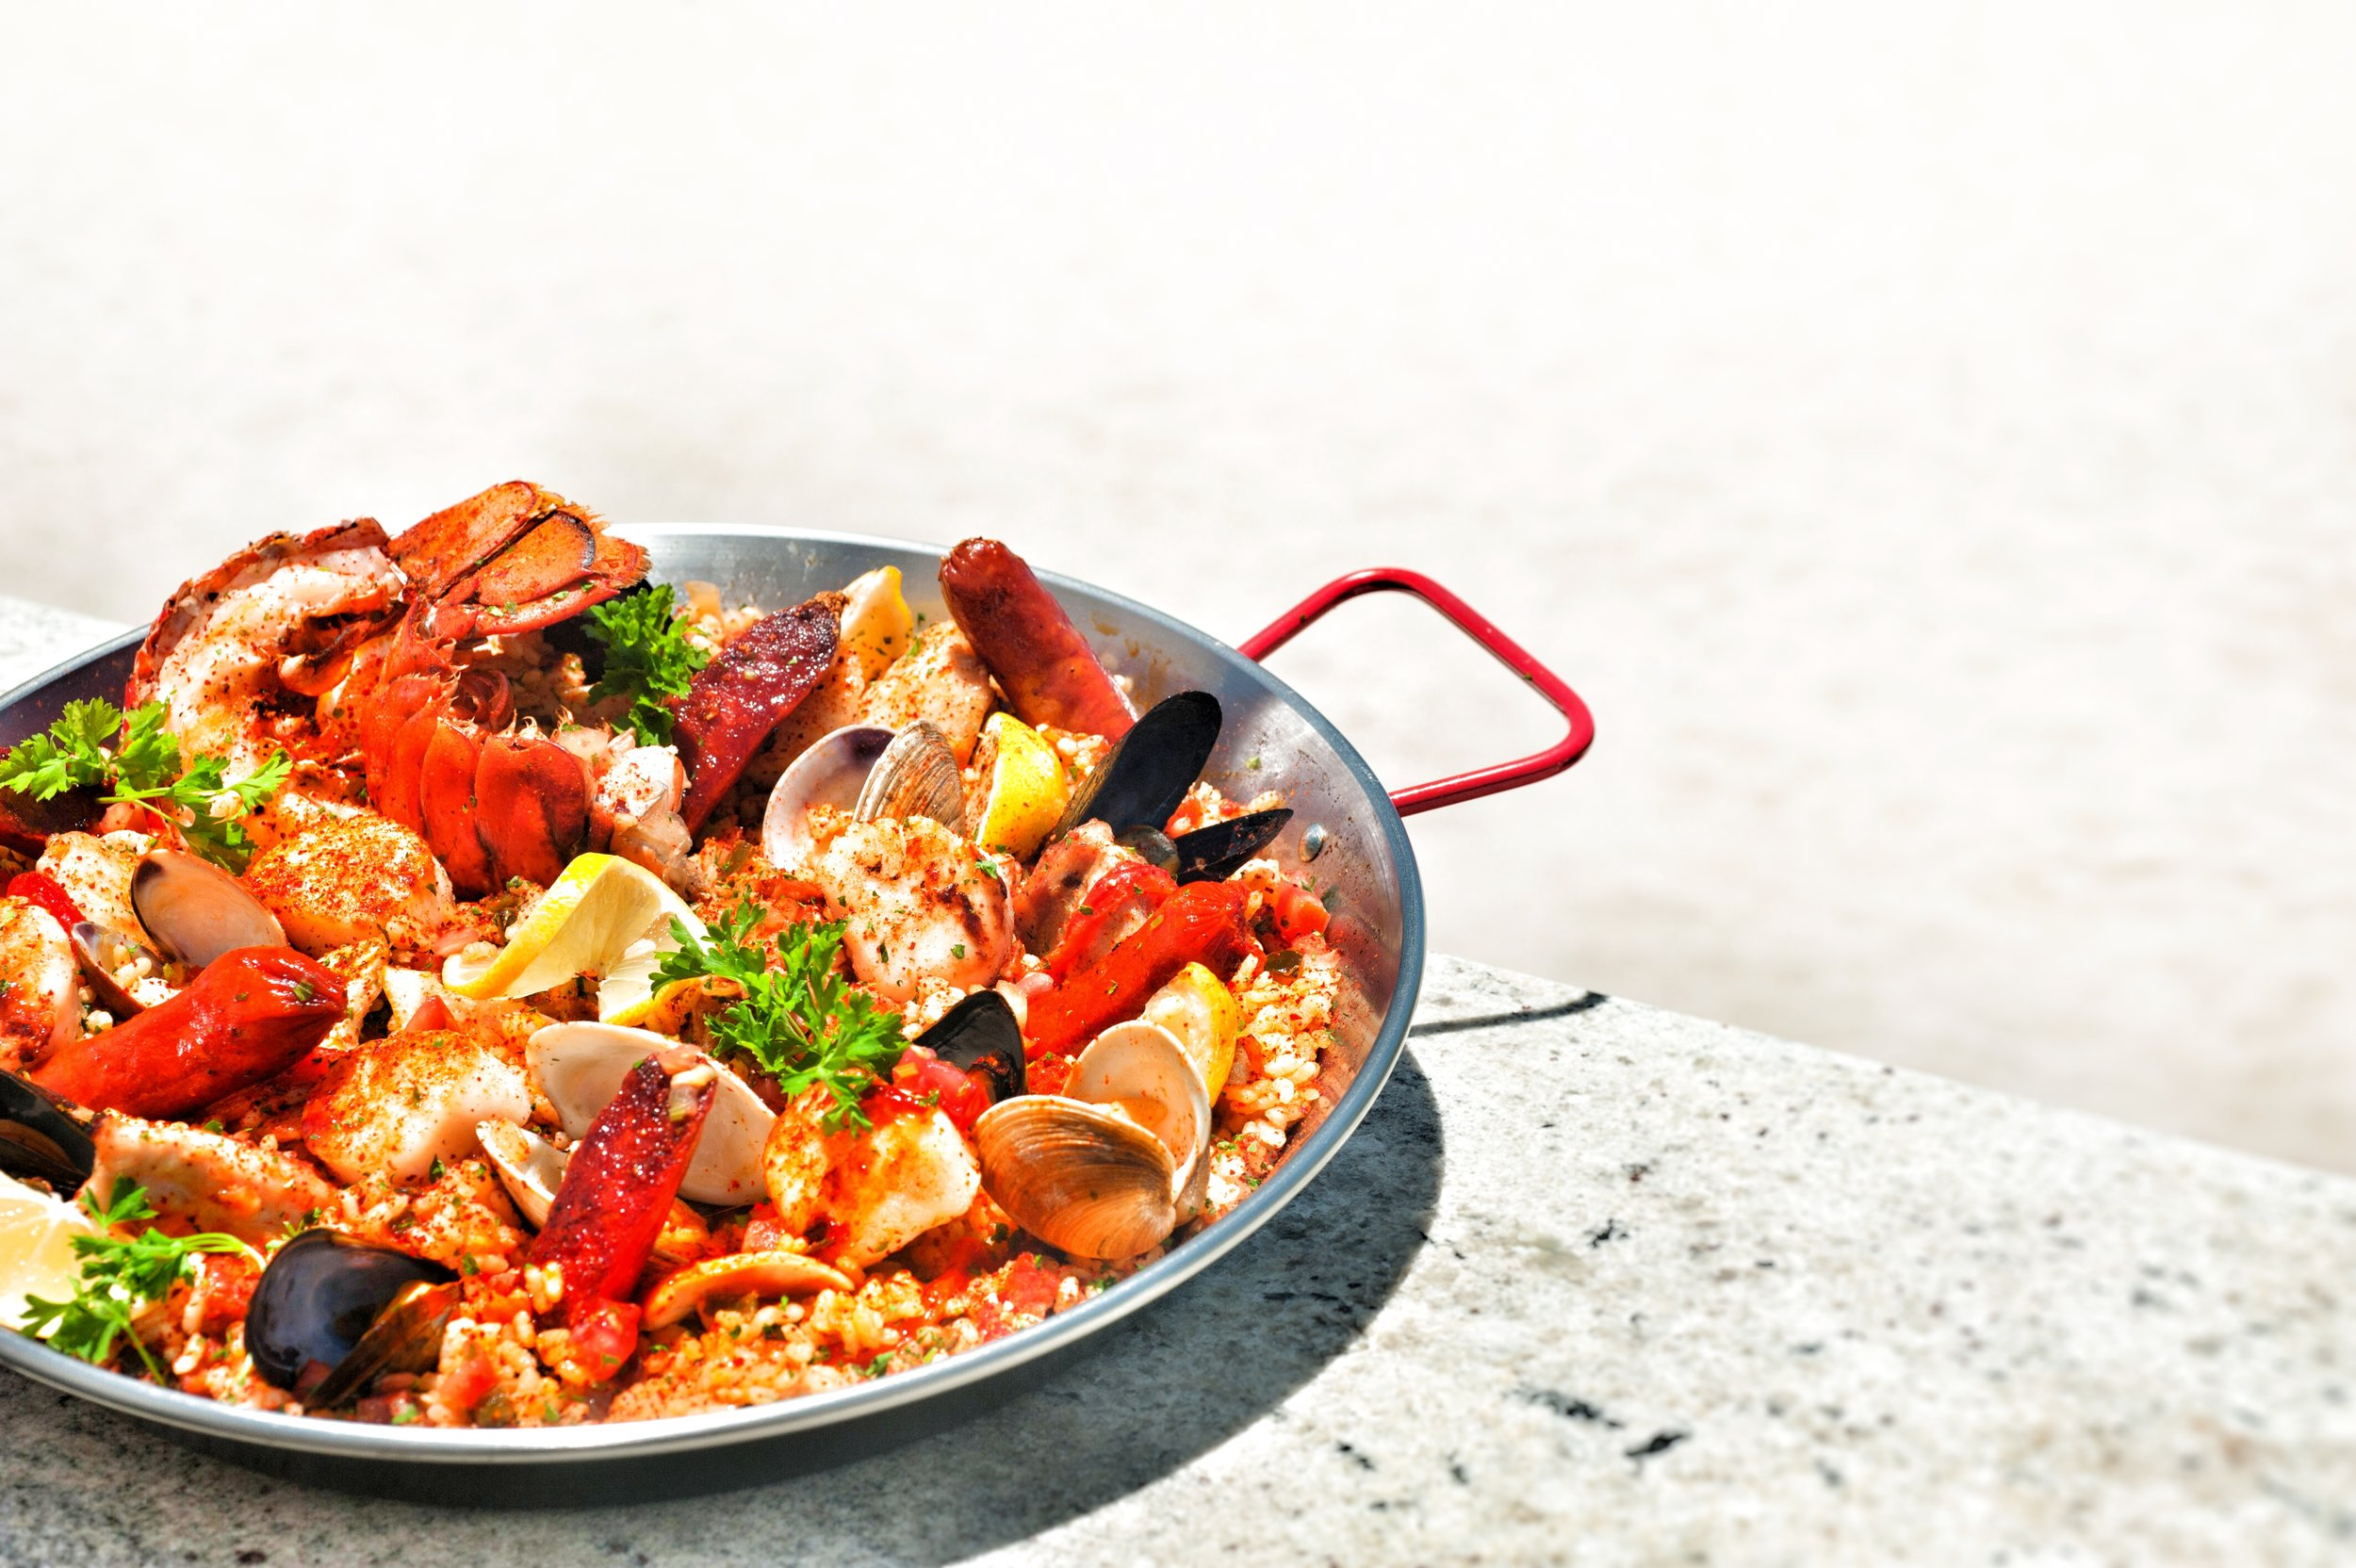 paella - Exclusively Saturday & sundayFrom 5pm to close